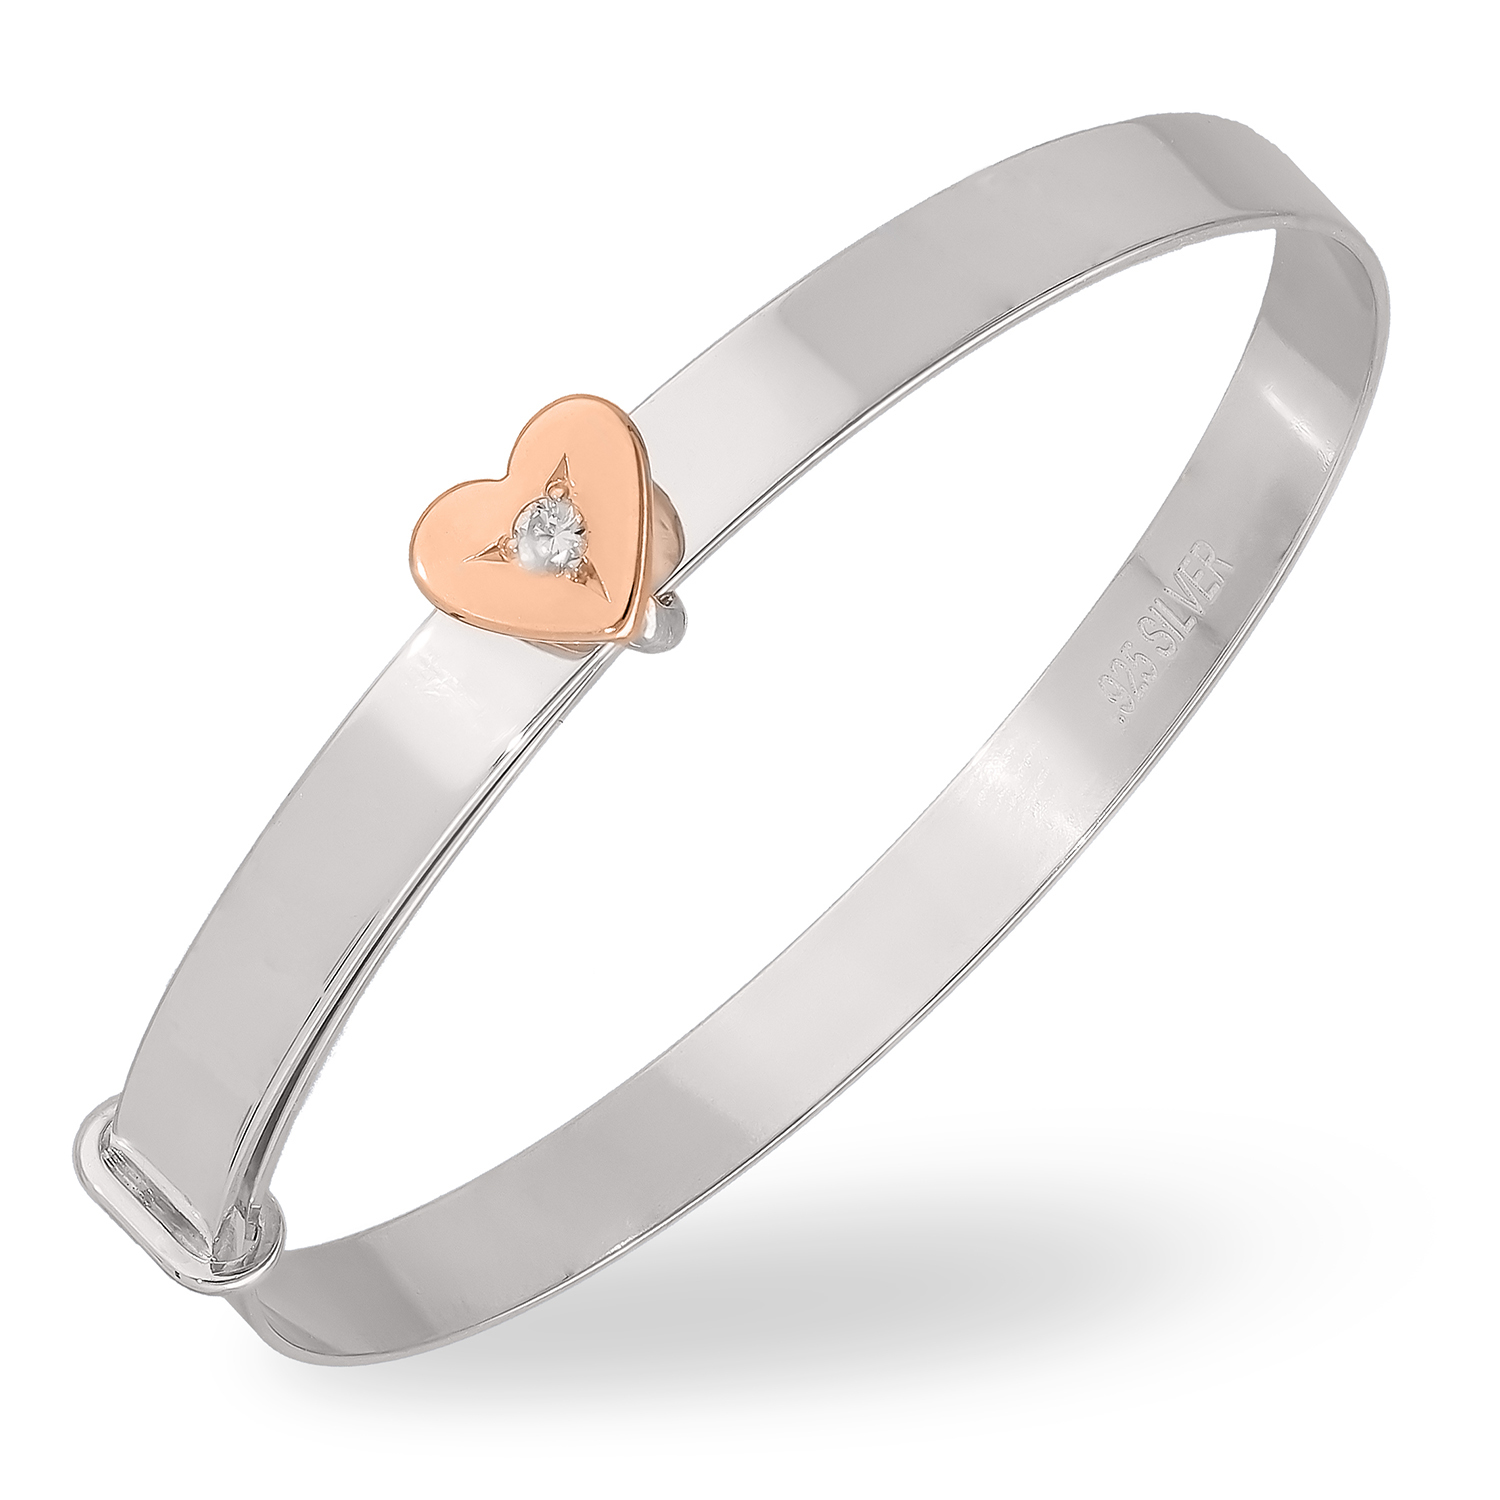 Sterling Silver Bangle with a Rose Gold Plated Heart, White CZ, and Personalization on the Band